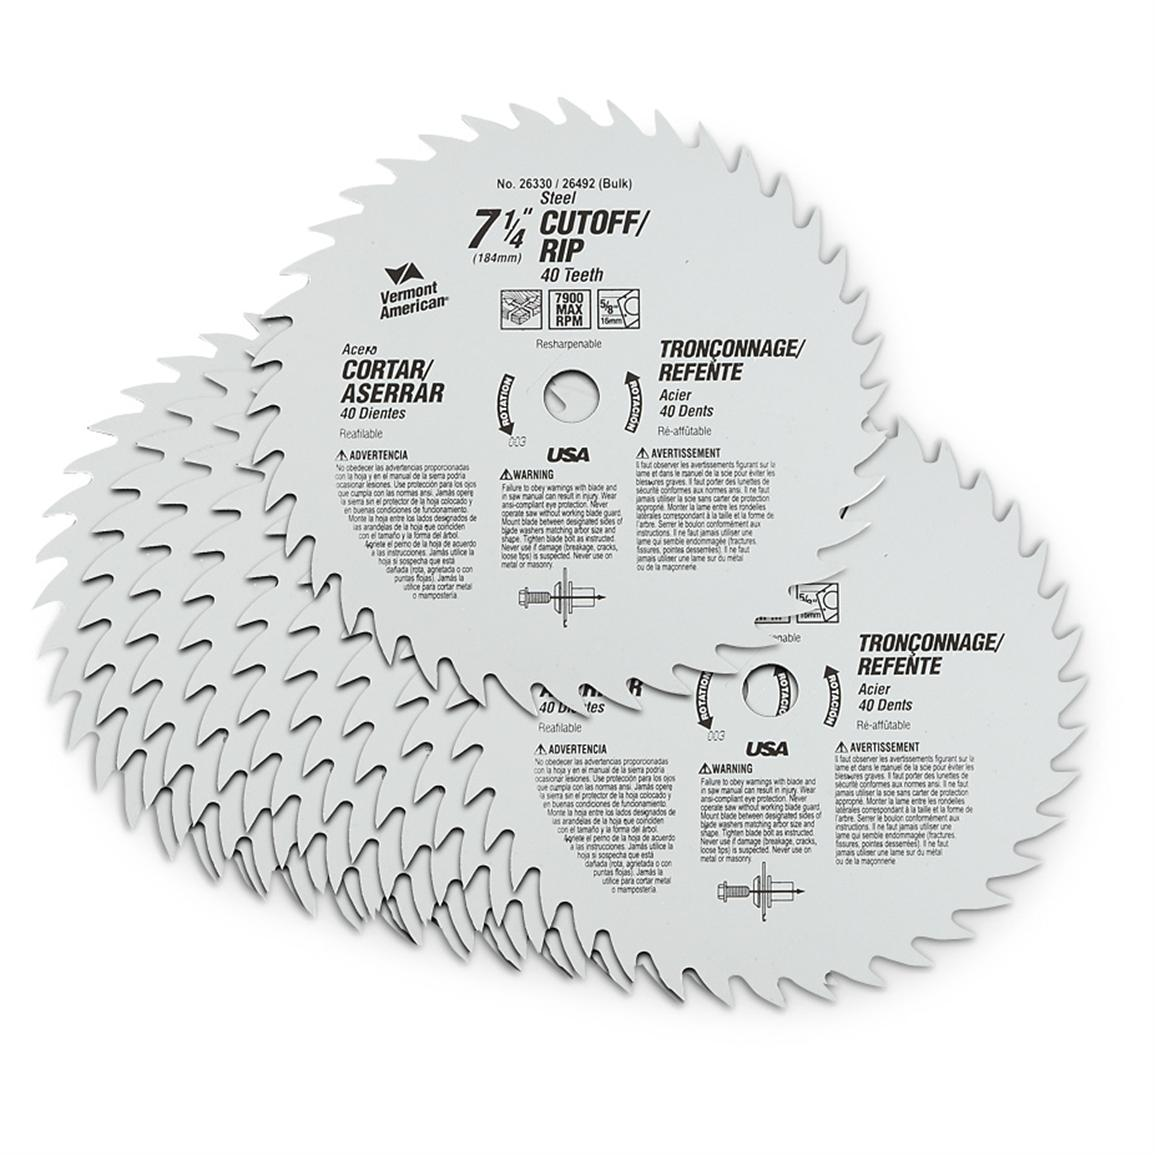 10-Pk. of Vermont American® 7 1/4 inch 40-tooth Circular Saw Blades